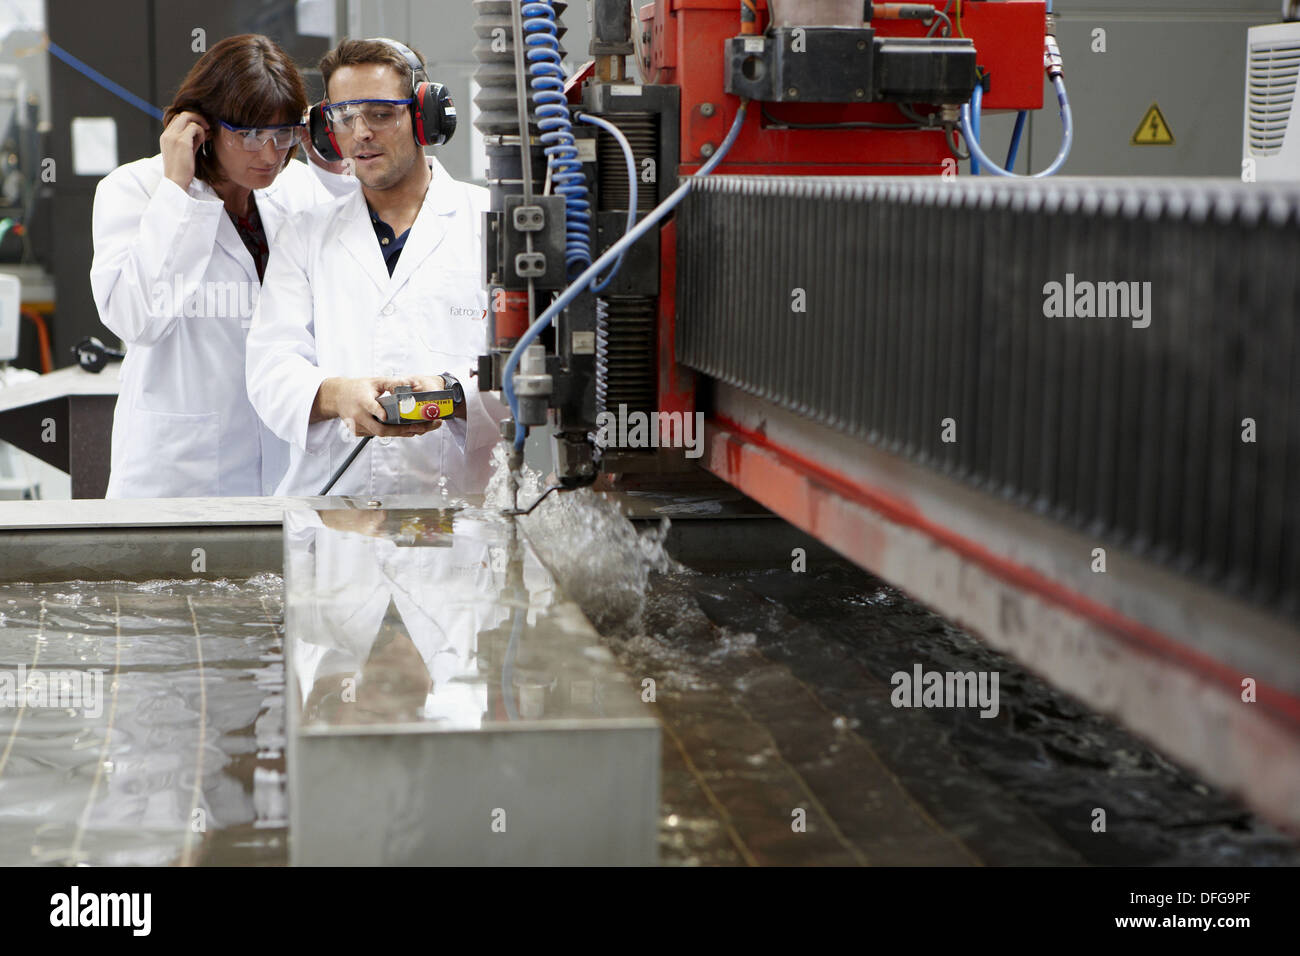 Researchers using abrasive waterjet technology cutting machine for